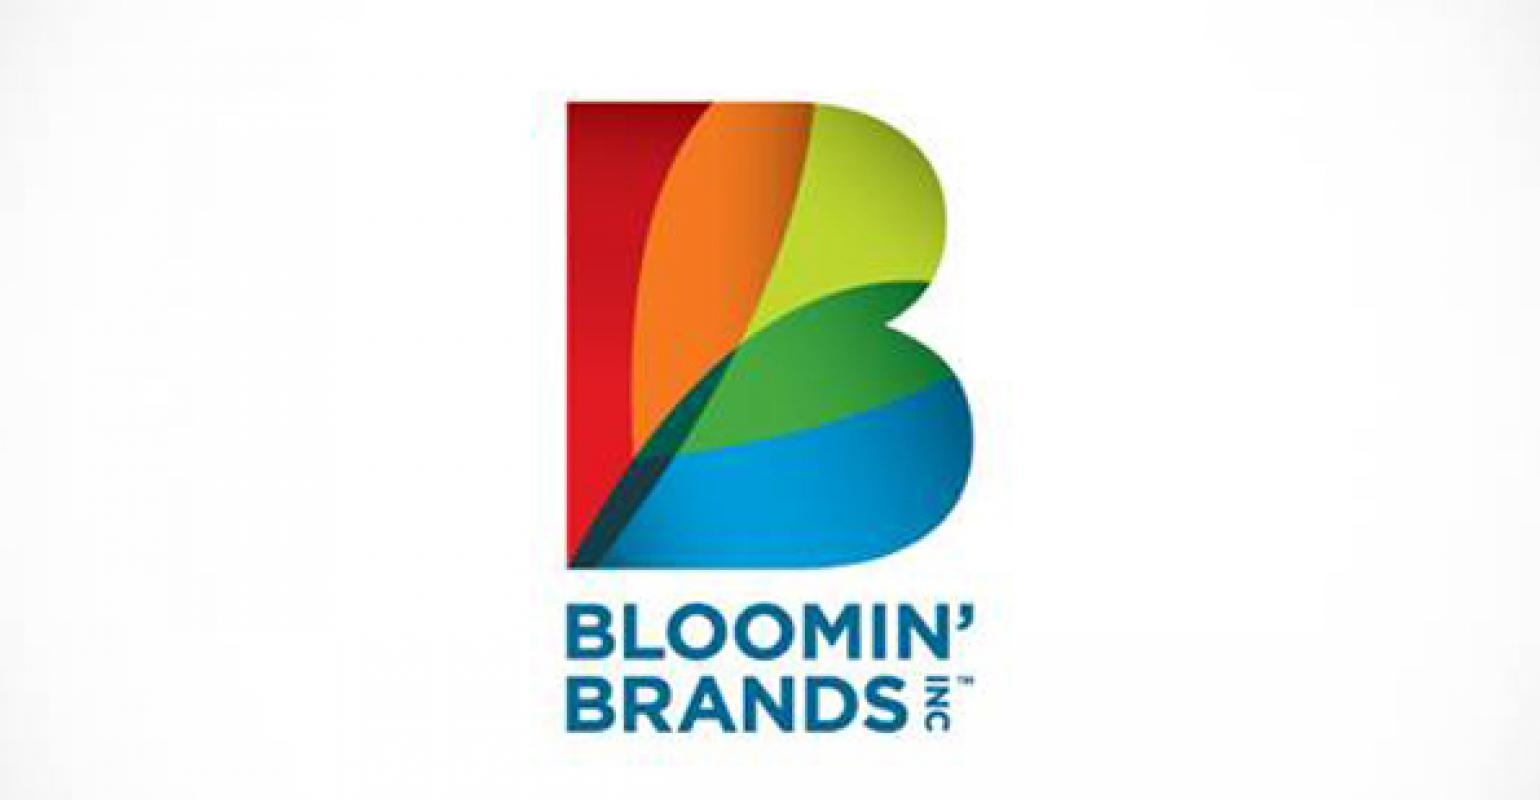 Chris Sullivan resigns from Bloomin' Brands' board